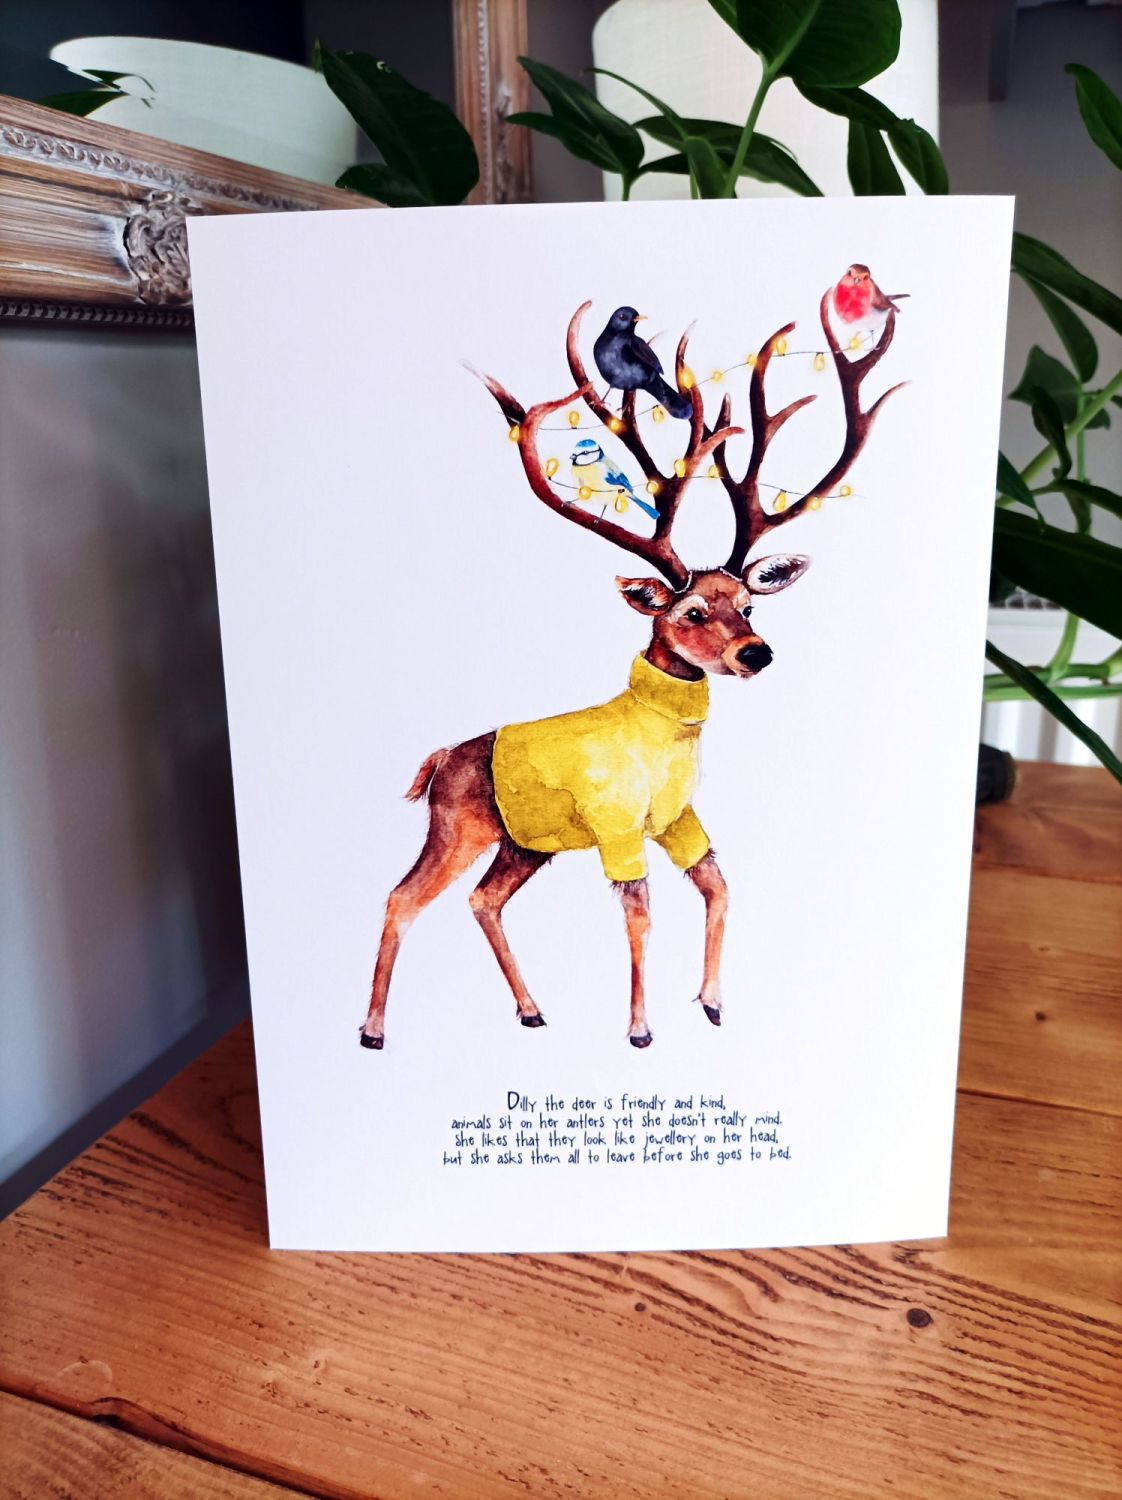 Dilly the deer